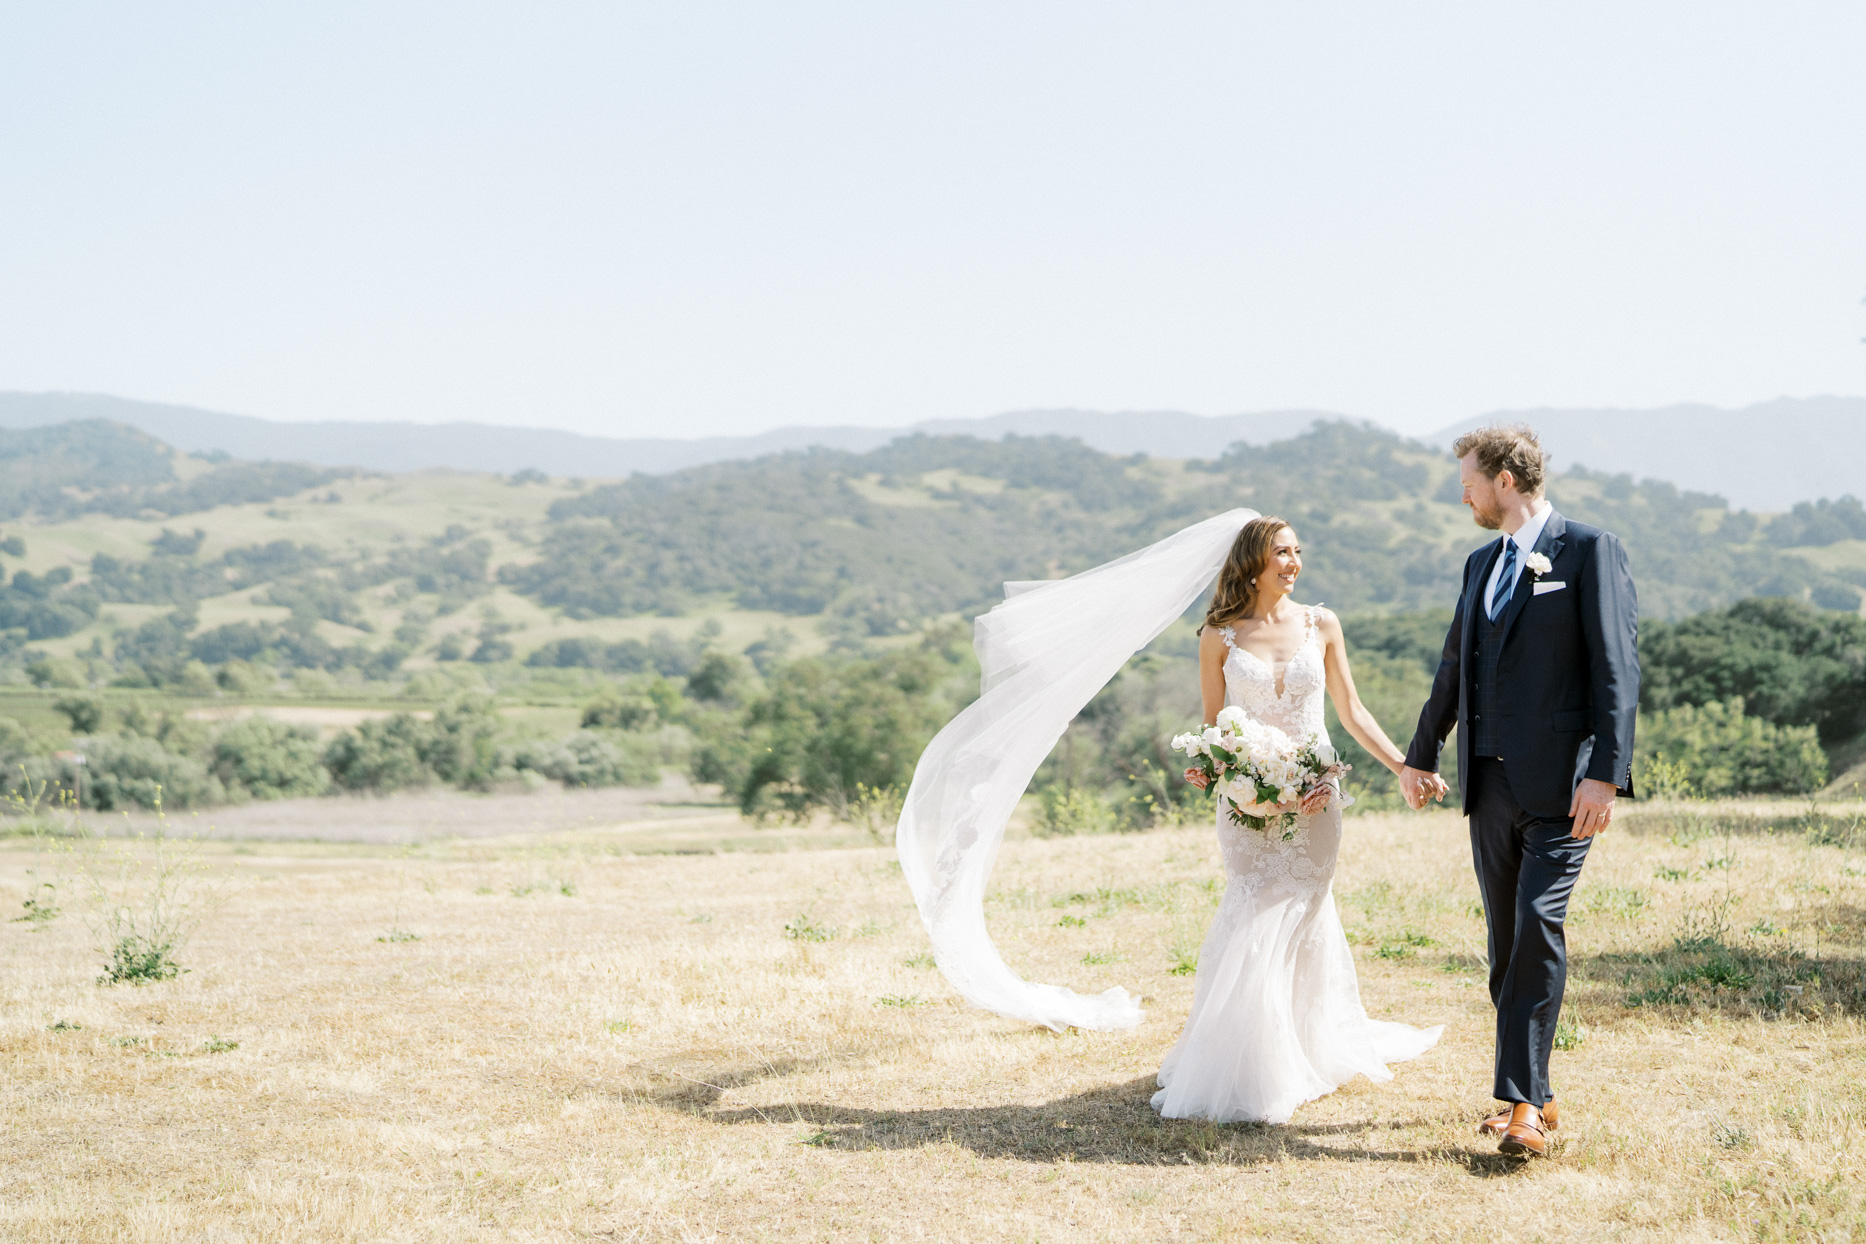 bride and groom smiling holding hands outside on hill